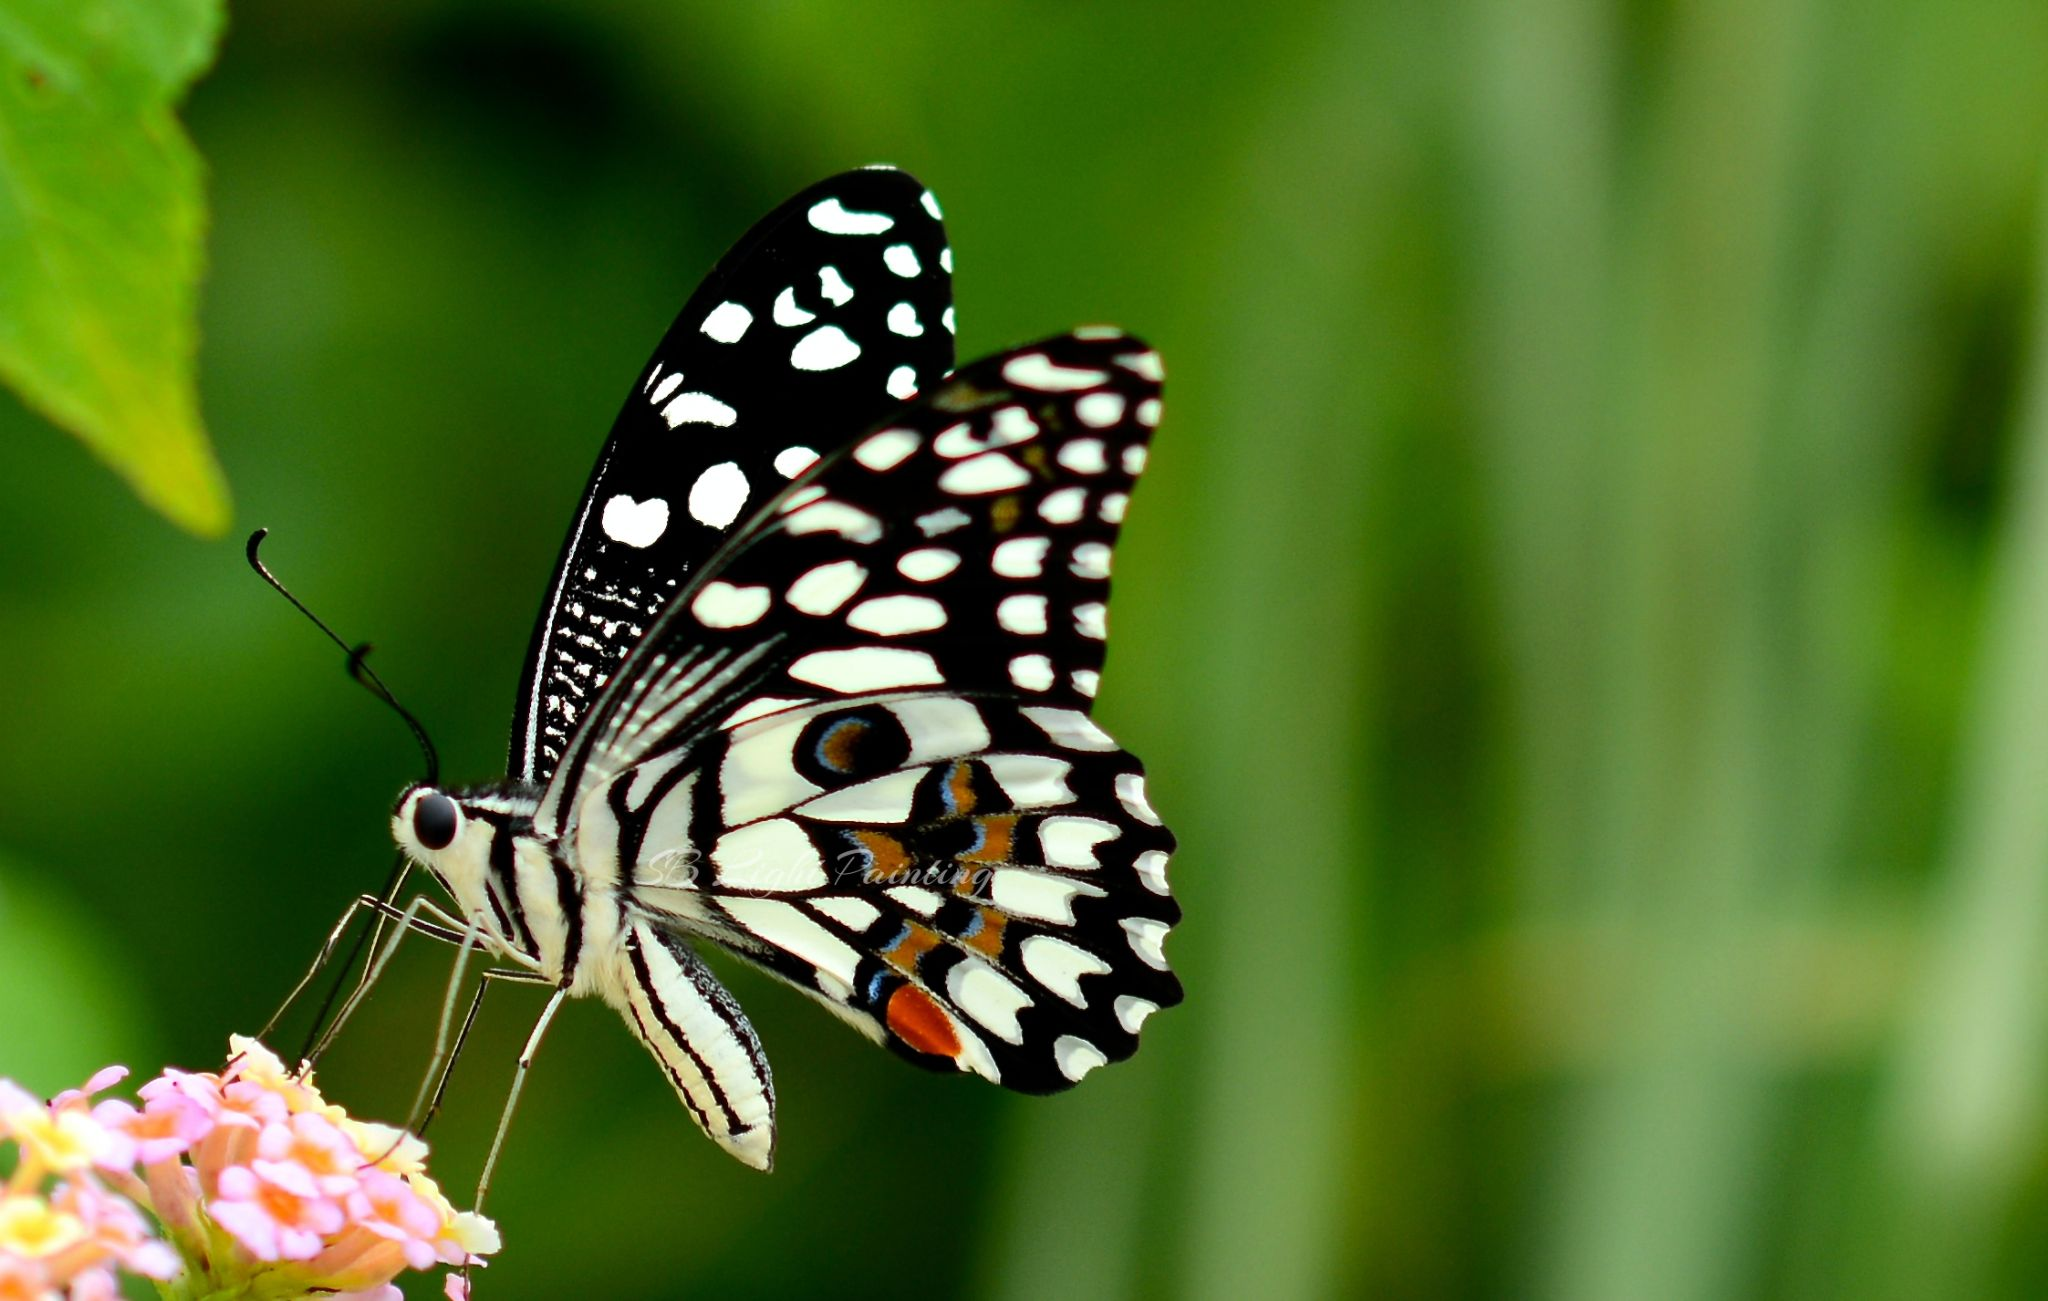 Butterfly by shyamal.biswas.129